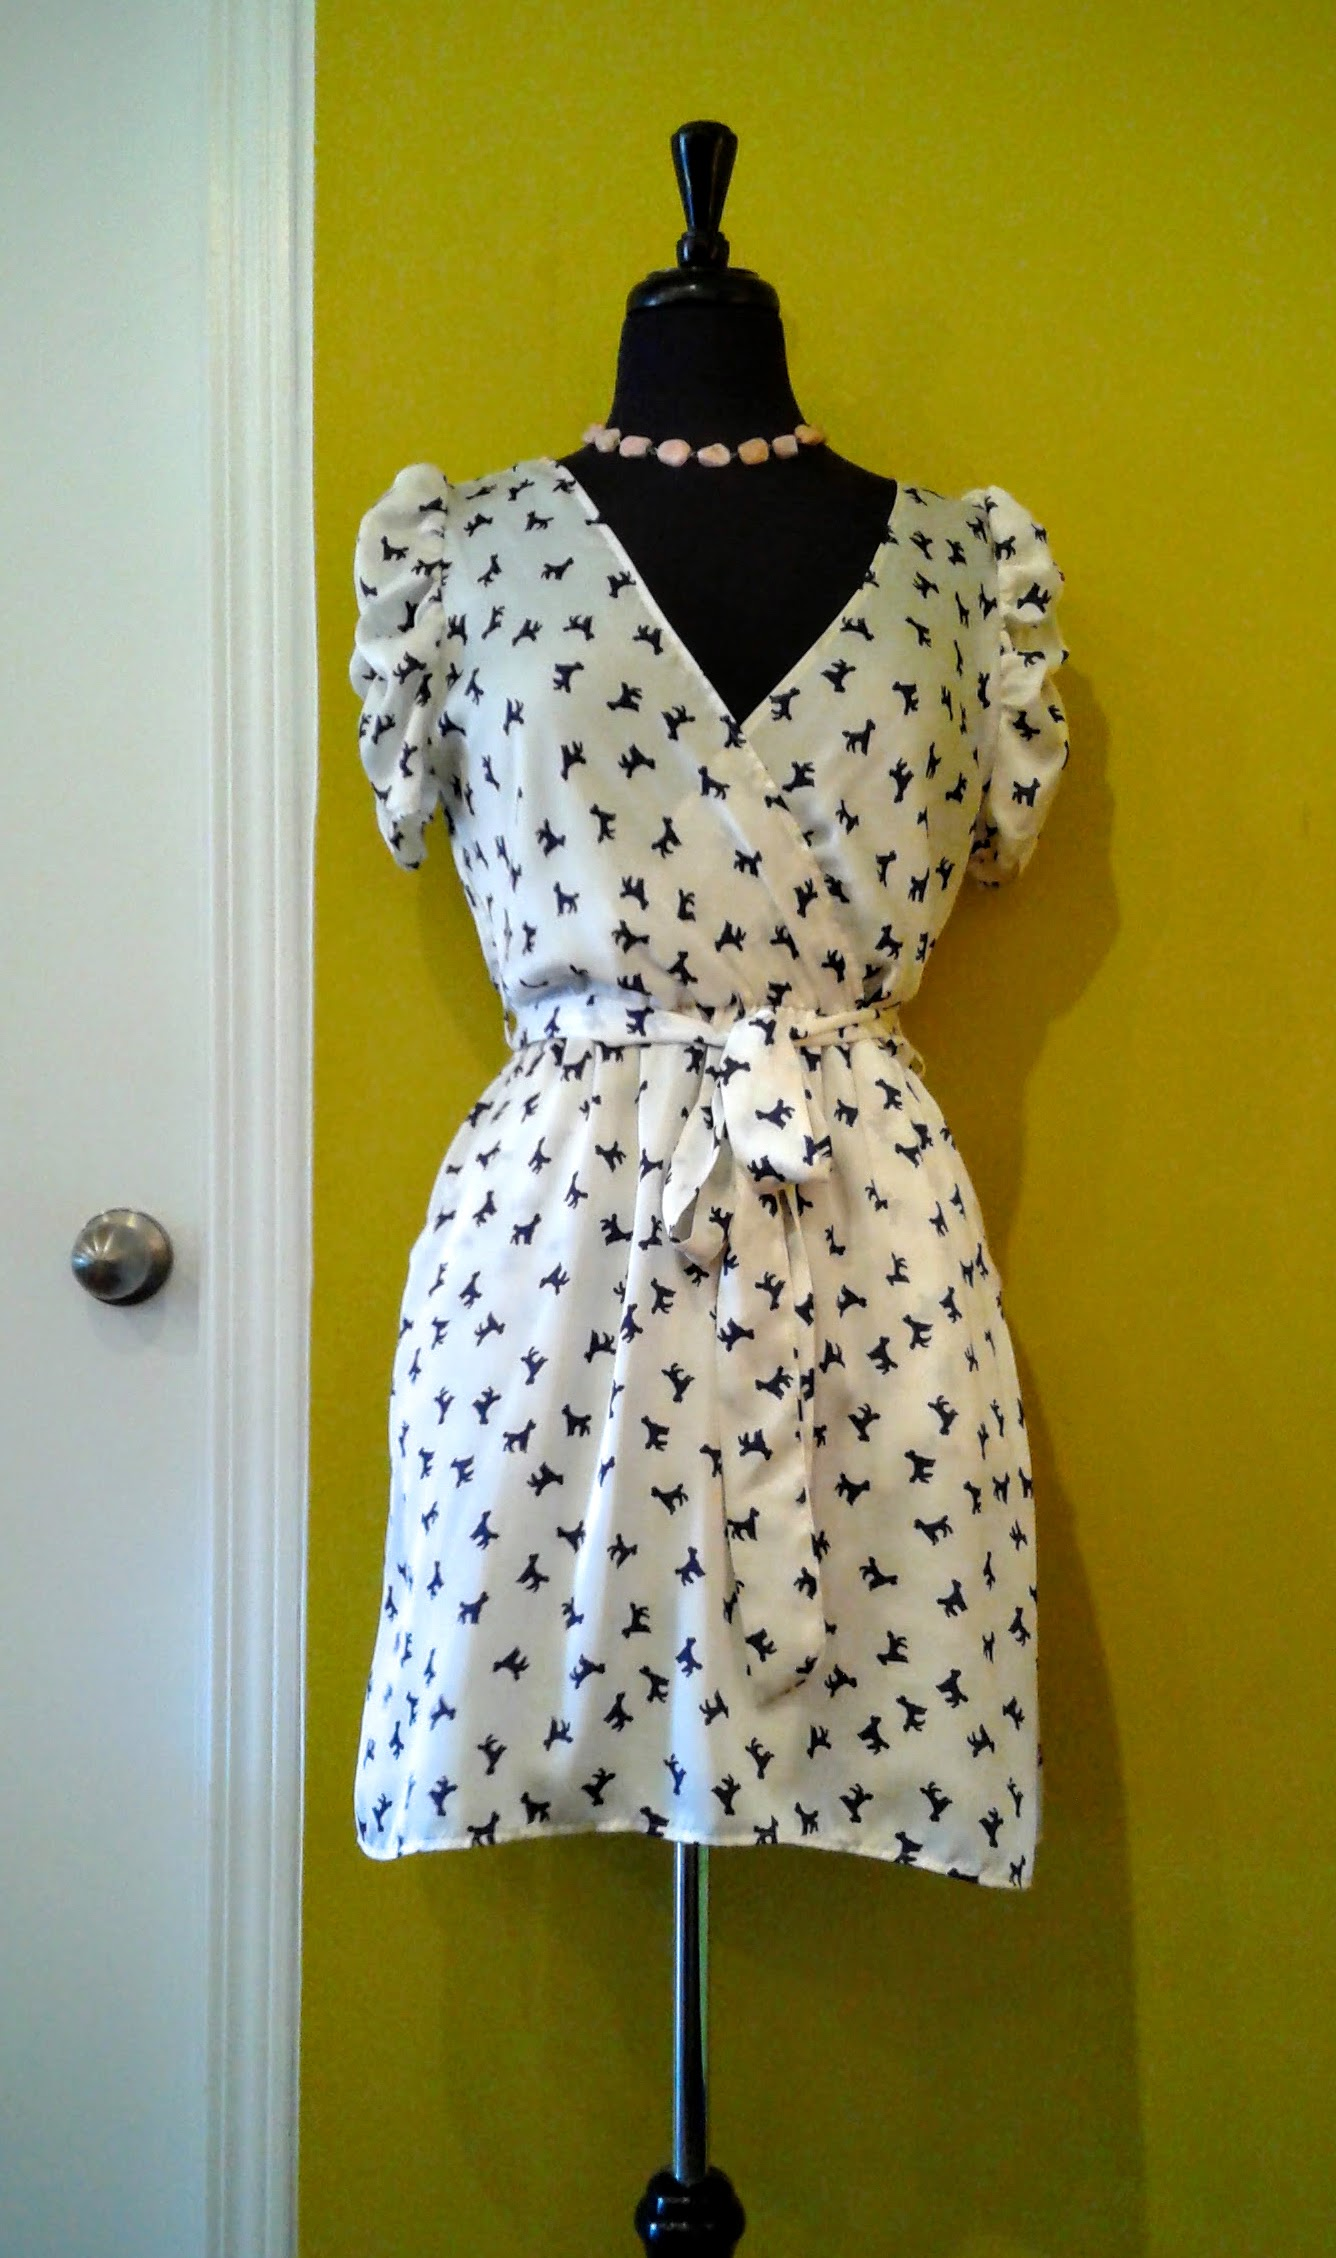 Poodle dress; Size M, $30